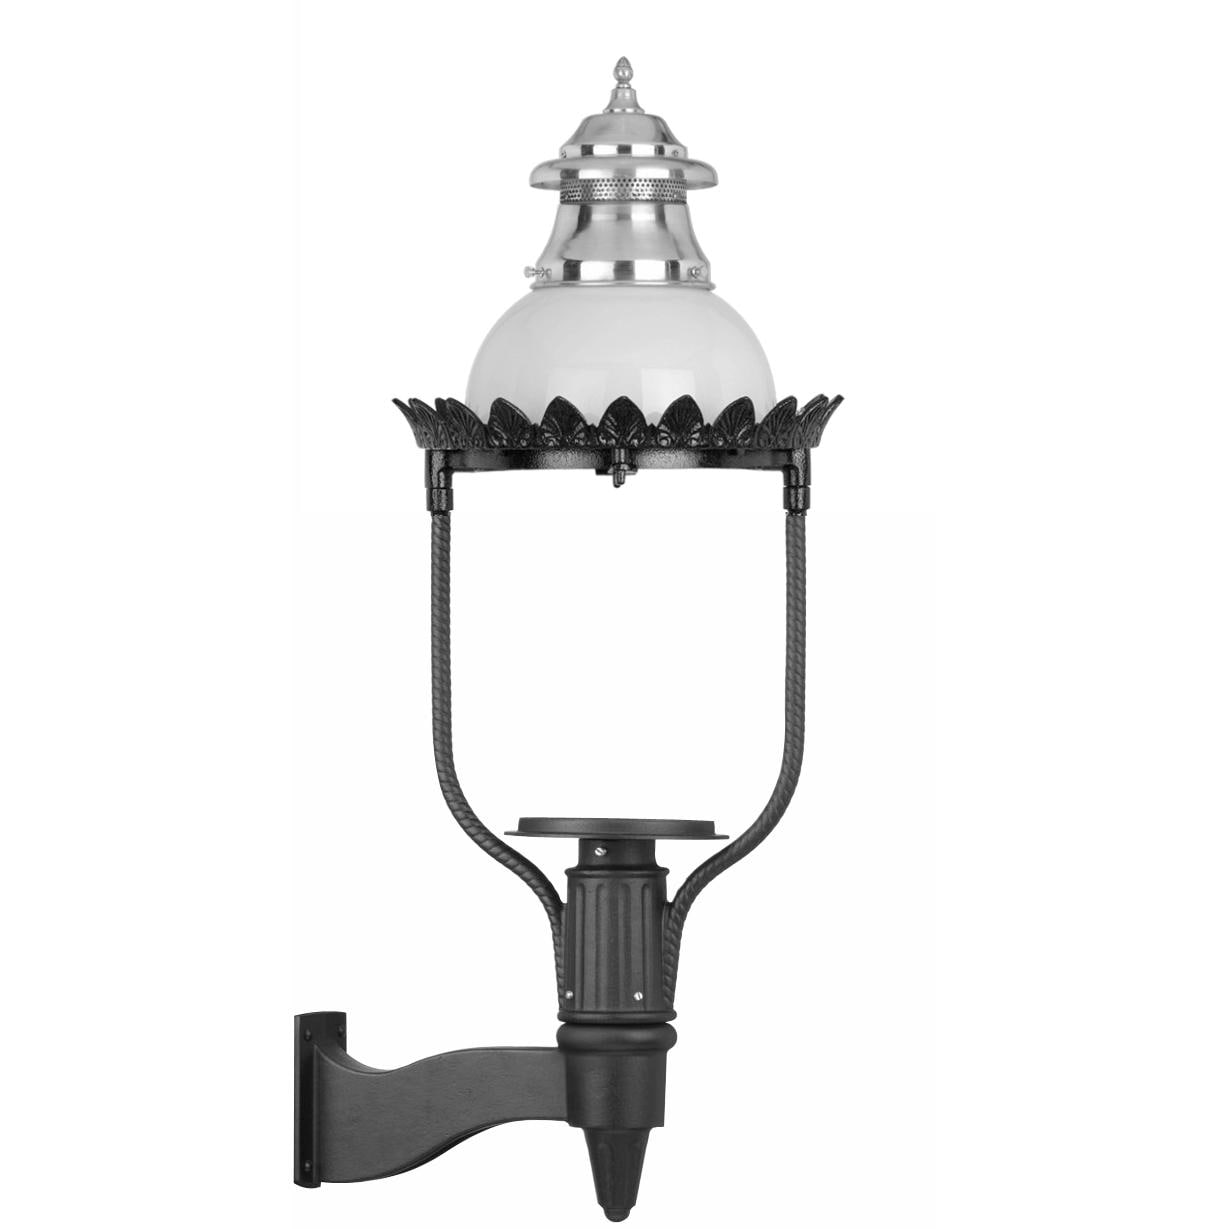 American Gas Lamp Works GL48 Cast Aluminum Manual Ignition Natural Gas Light With Open Flame Burner And Standard Wall Mount